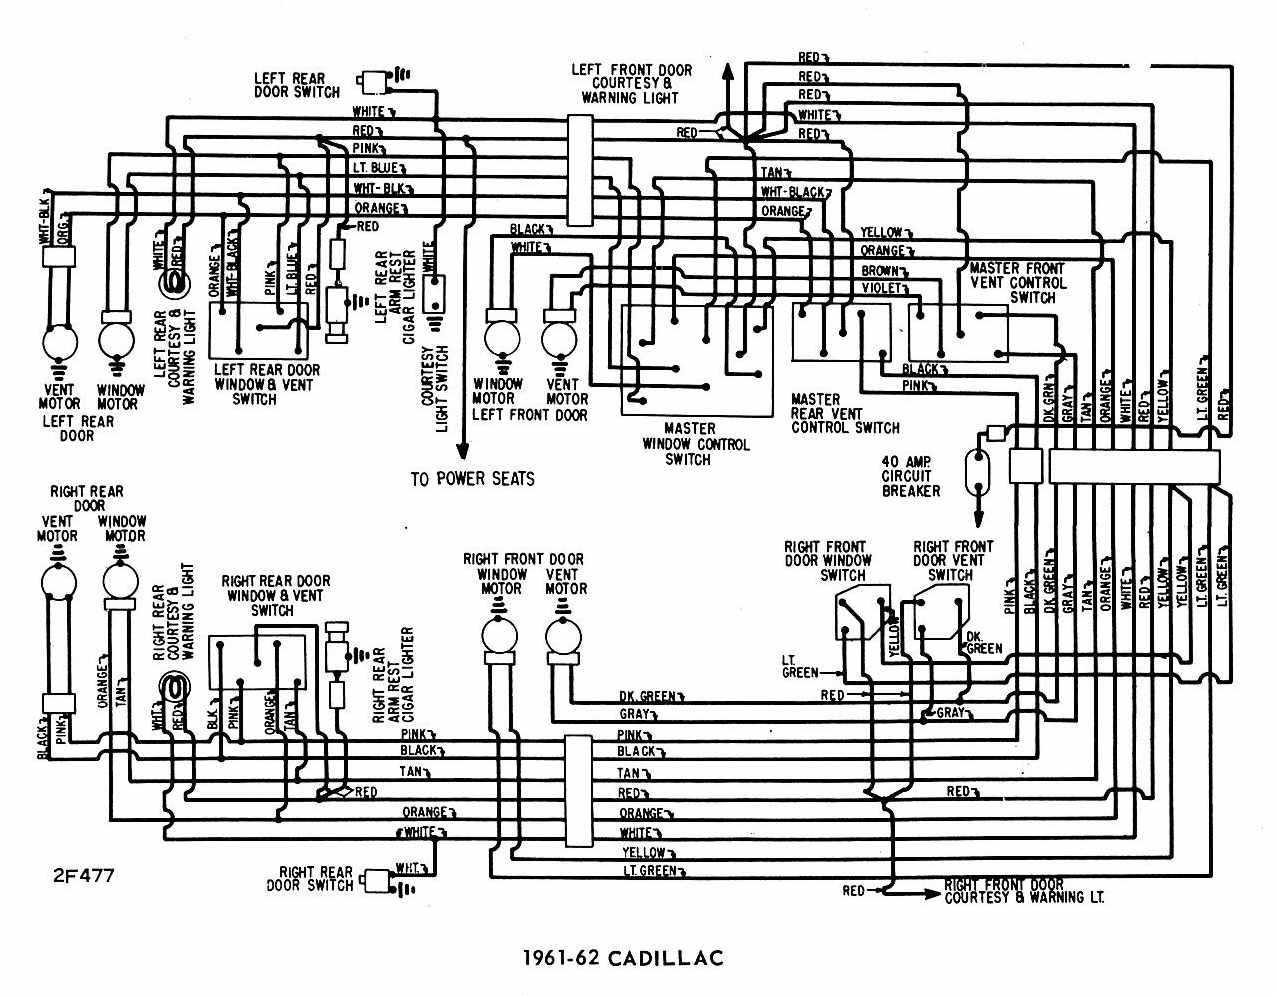 2004 cadillac wiring diagram wiring diagram todayscadillac cts car stereo  wiring diagram free picture simple wiring